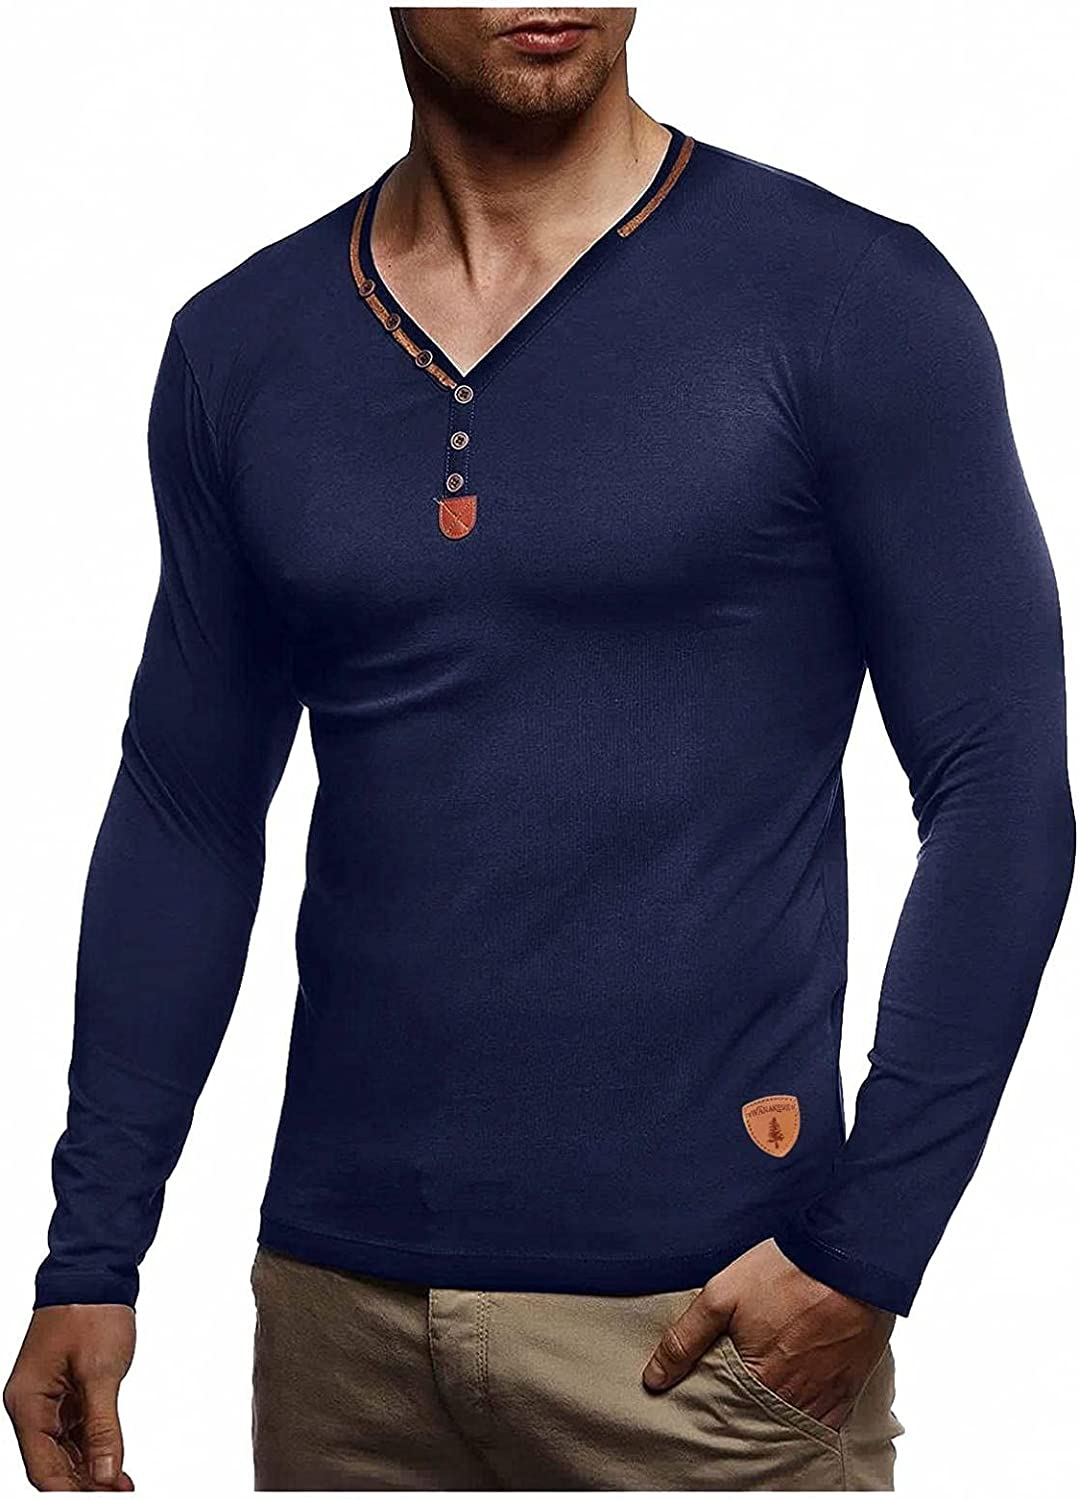 Shirts for Men Men's Autumn Winter Multi-Button Standard Solid Color V-Neck Long-sleeve Tee Mens Shirts Polo Mens Shirts